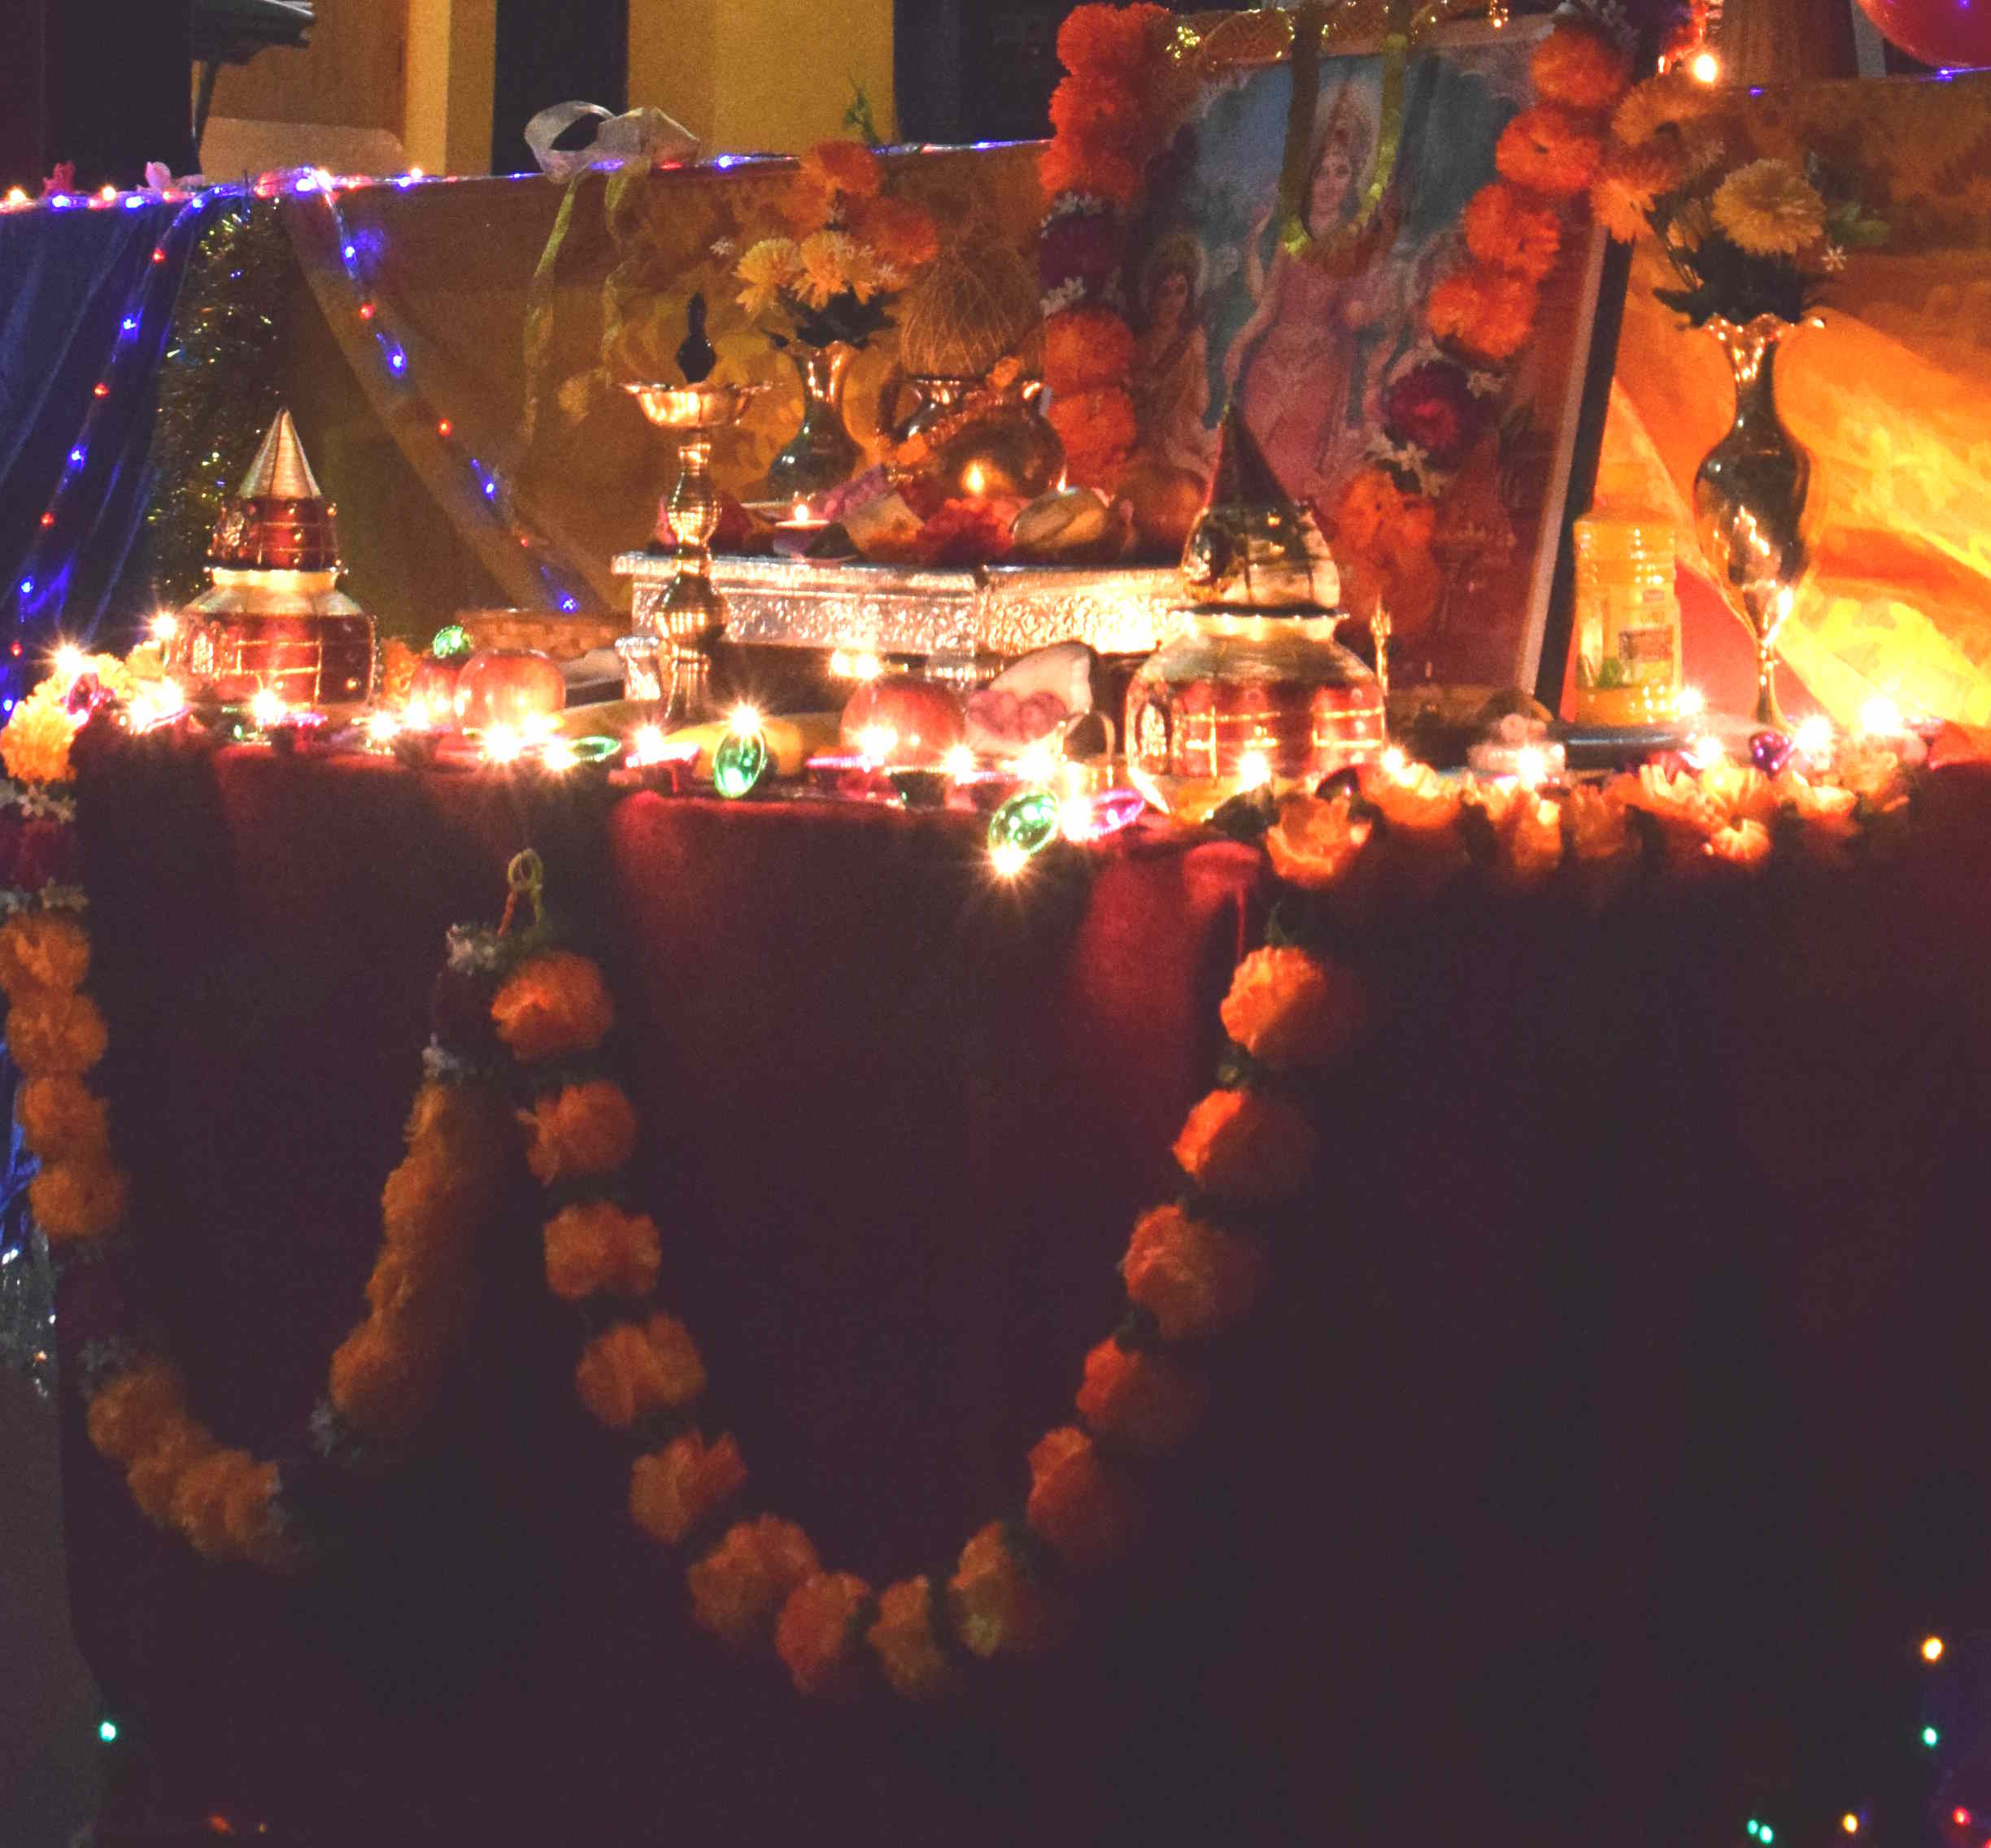 The event started with traditional Diwali prayers